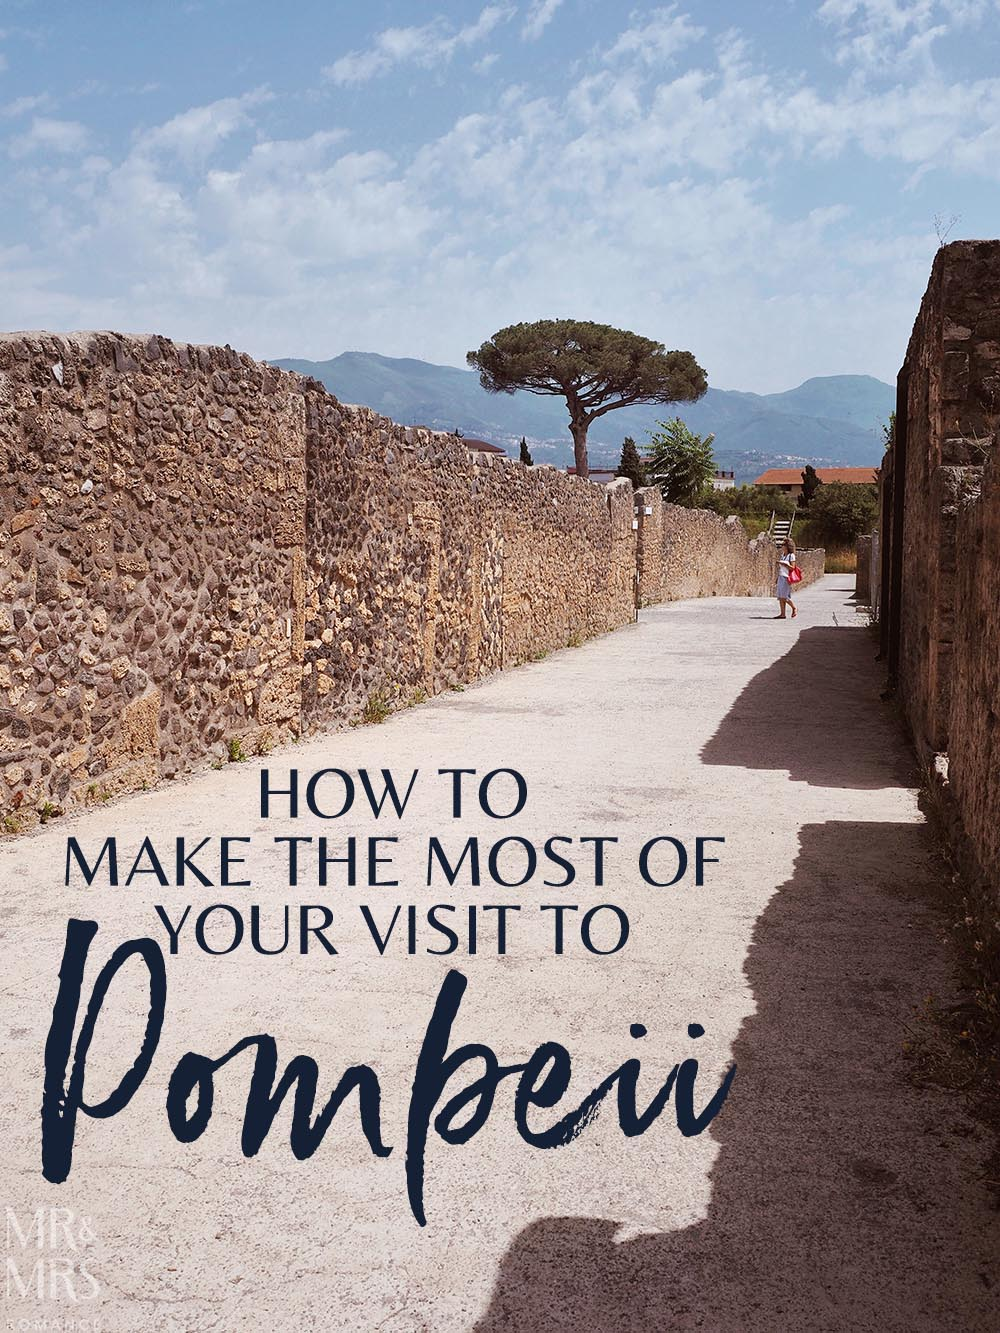 Pompeii DIY tour - how to get the most out of Pompeii